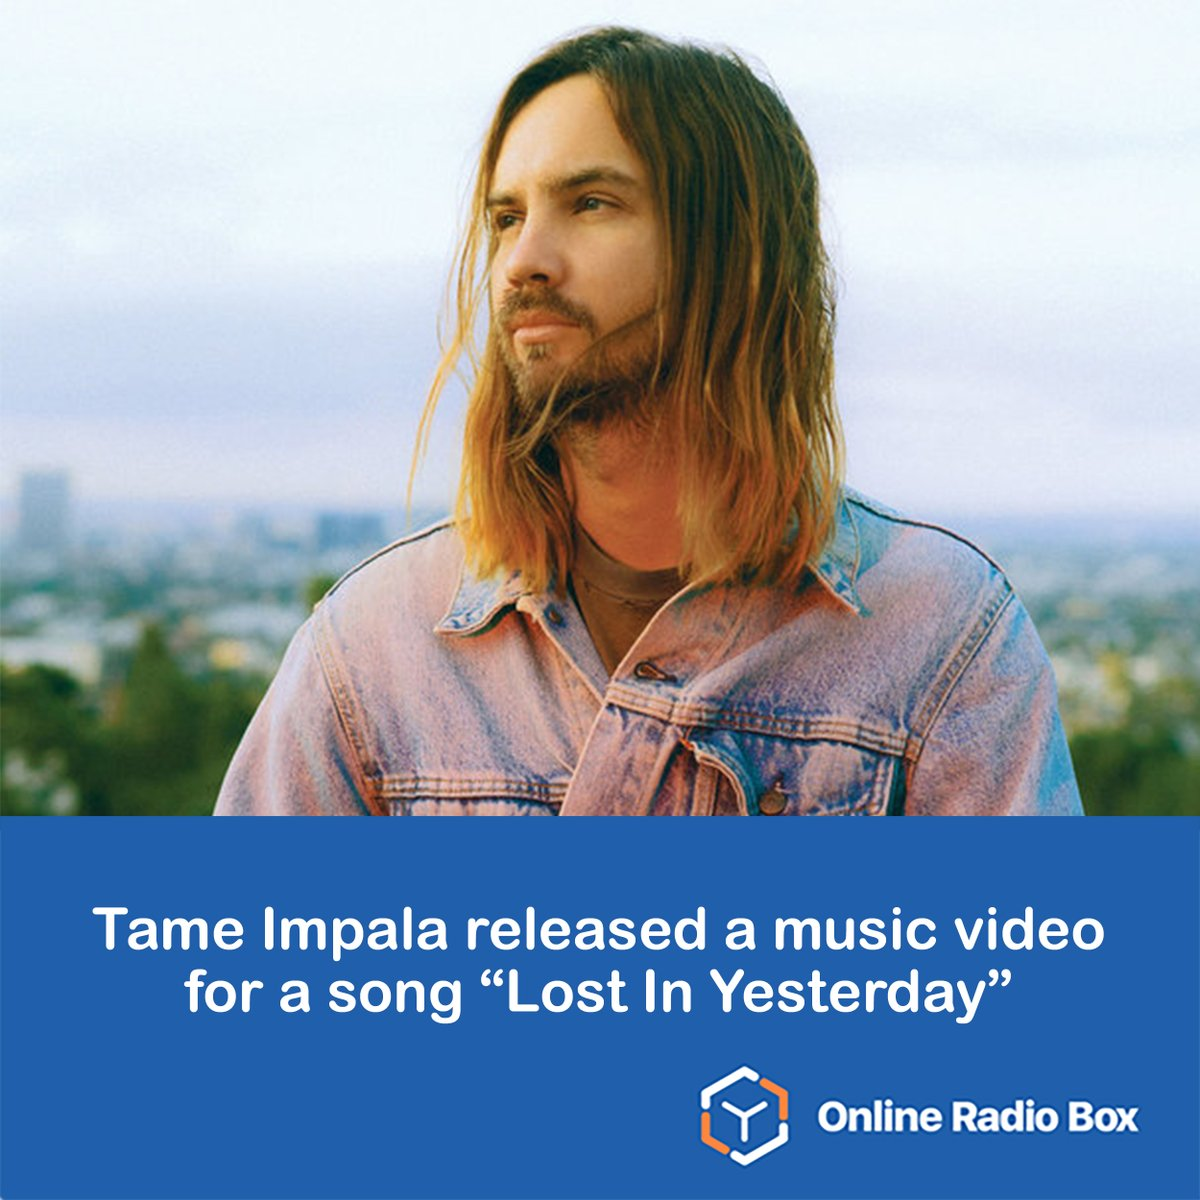 The release of the new album #TheSlowRush #TameImpala has scheduled for Feb 14. Fans can now enjoy the video for the previously released song #LostInYesterday:   Listen TAME IMPALA at #onlineradiobox   #musicnews #onlineradio #radio